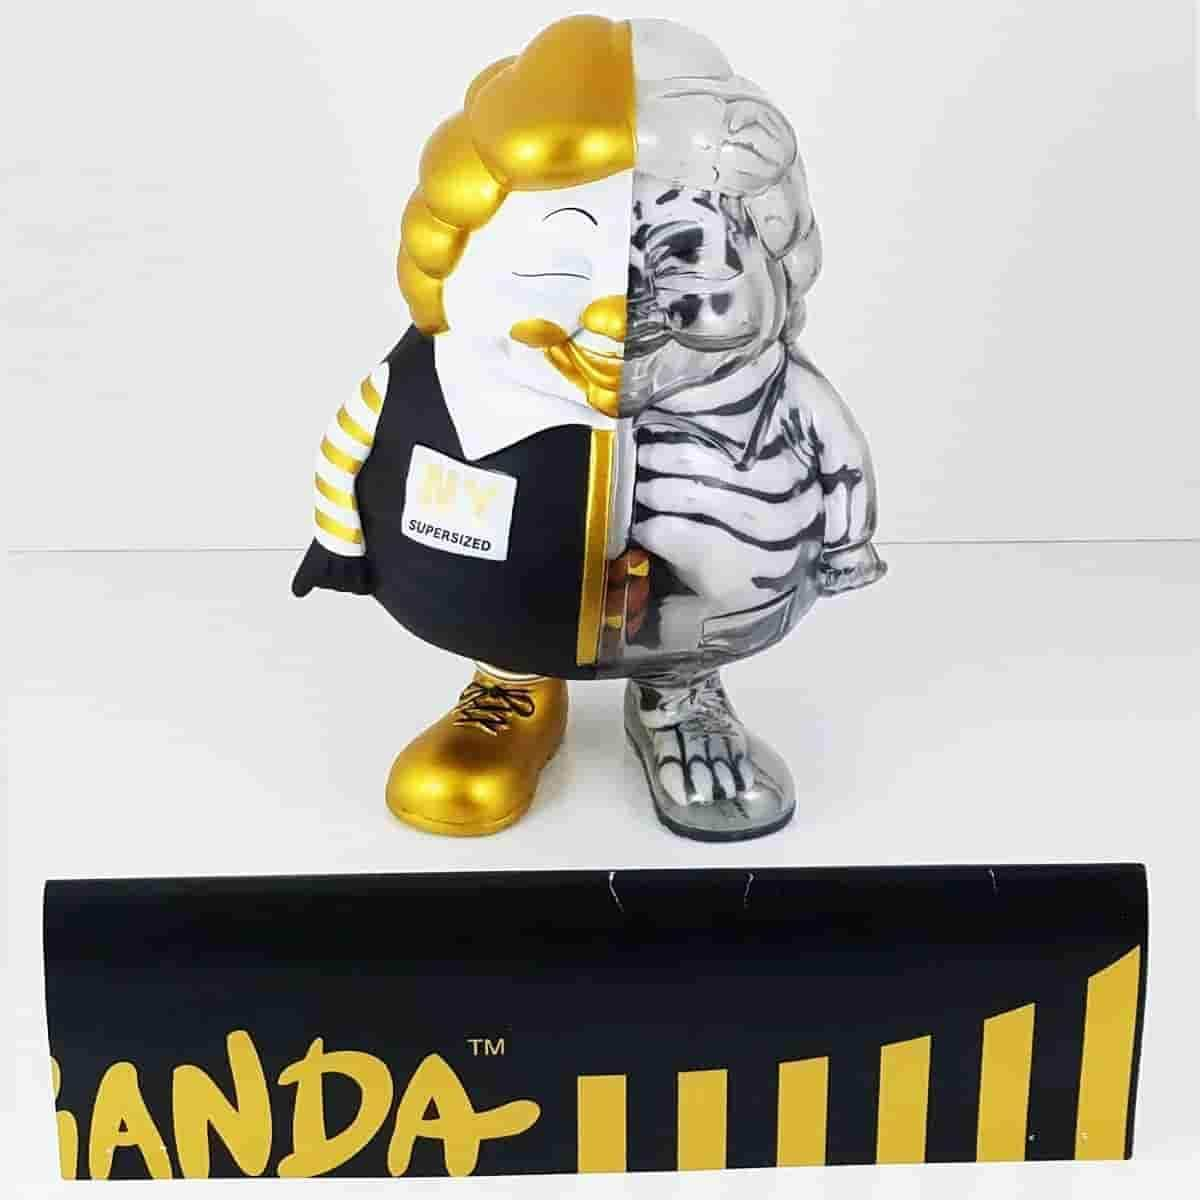 NY Black & Gold HALF XRAY MC SuperSized Secret Base x Toy Tokyo Ron English - Popaganda - IamRetro.com